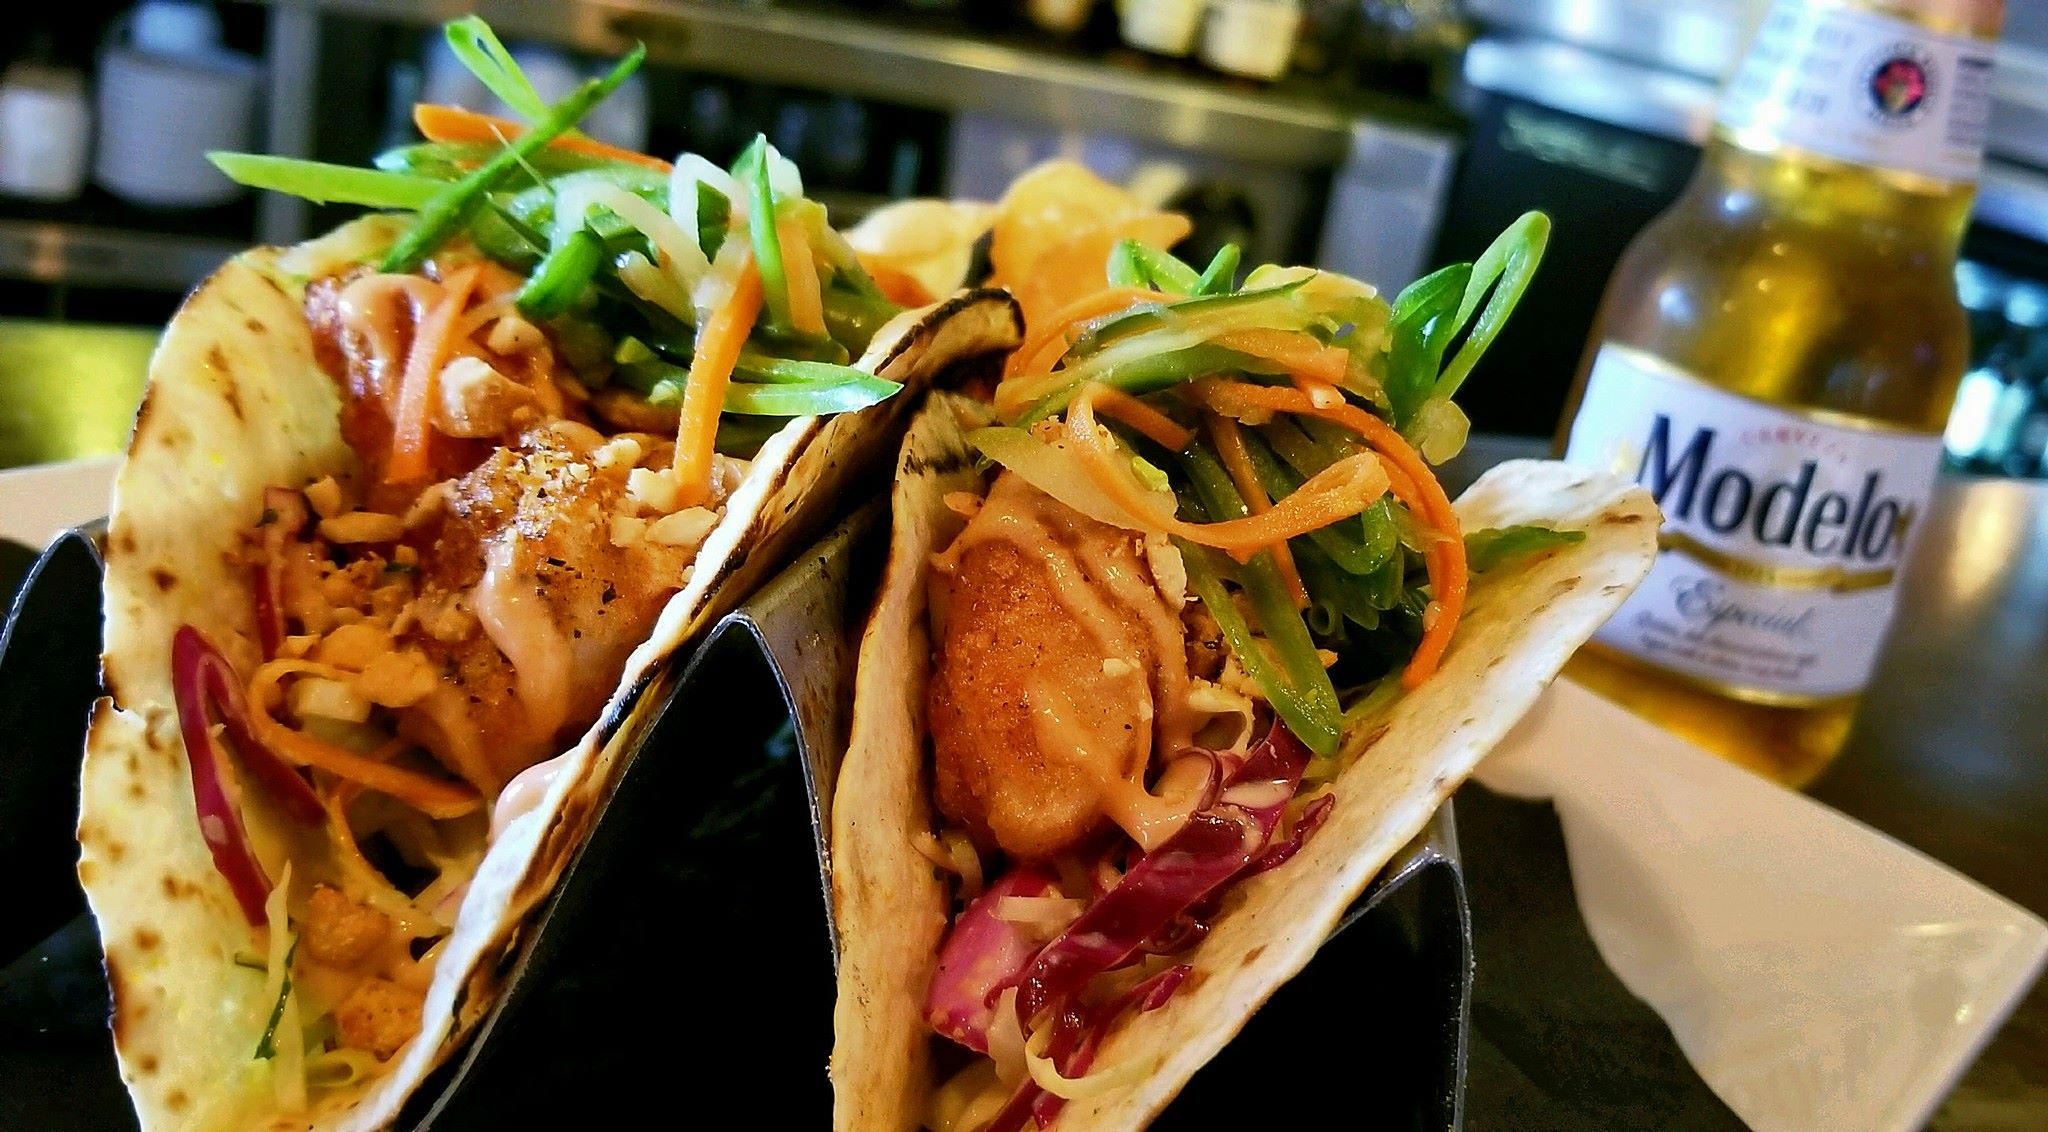 soft shell tacos in metal holders topped with sauce and coleslaw